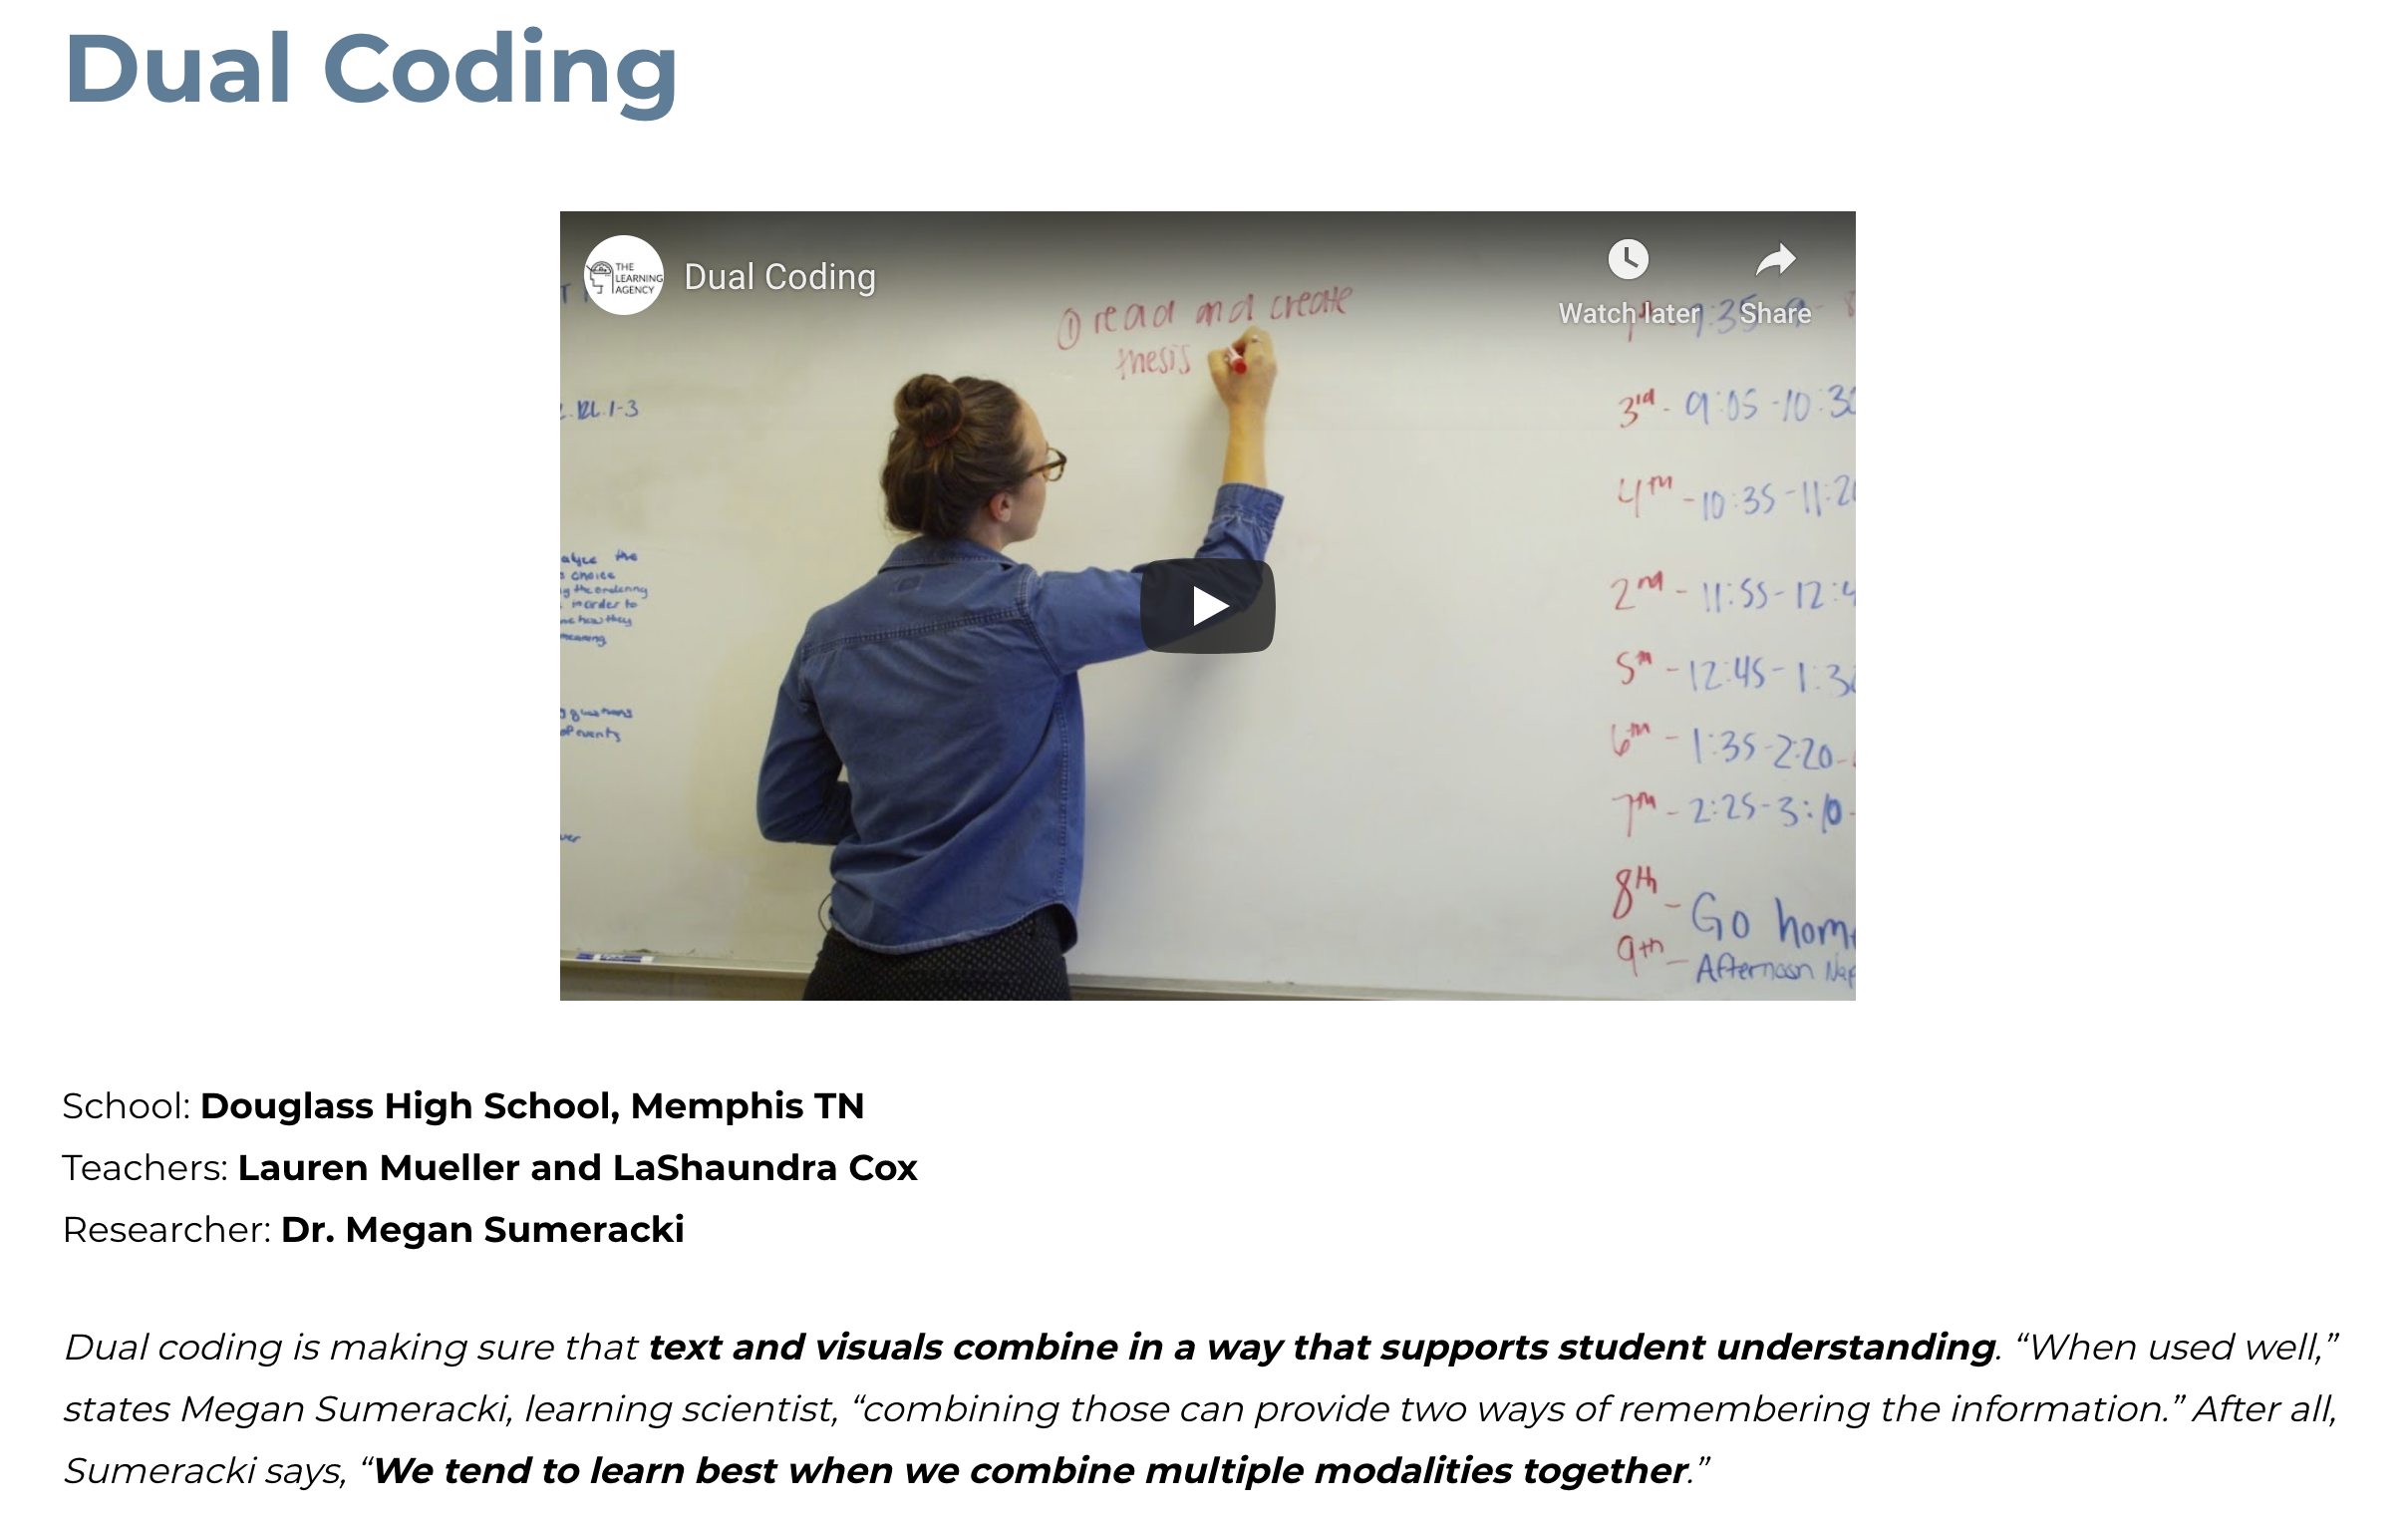 Example, dual coding video